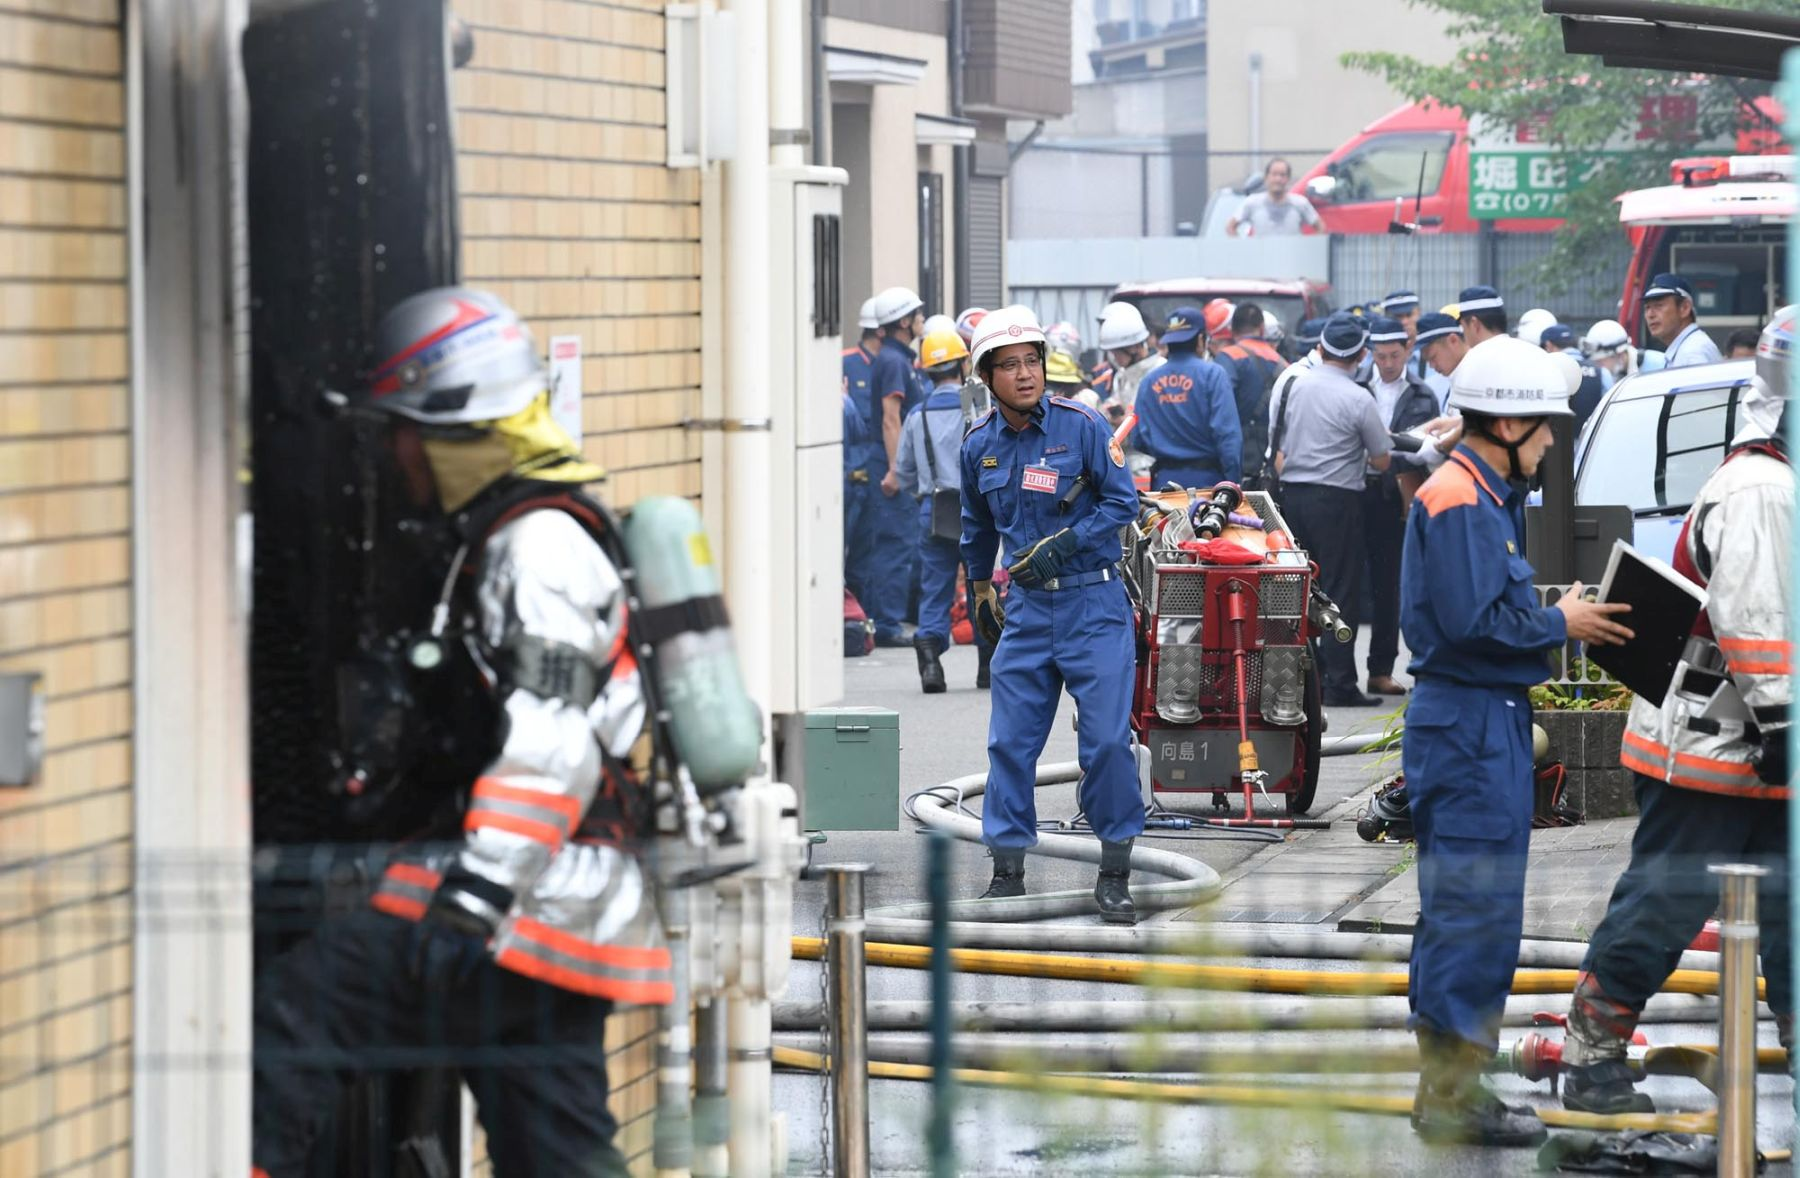 Japan in Shock as Arson at Kyoto Anime Leaves 33 Dead, 35 Injured